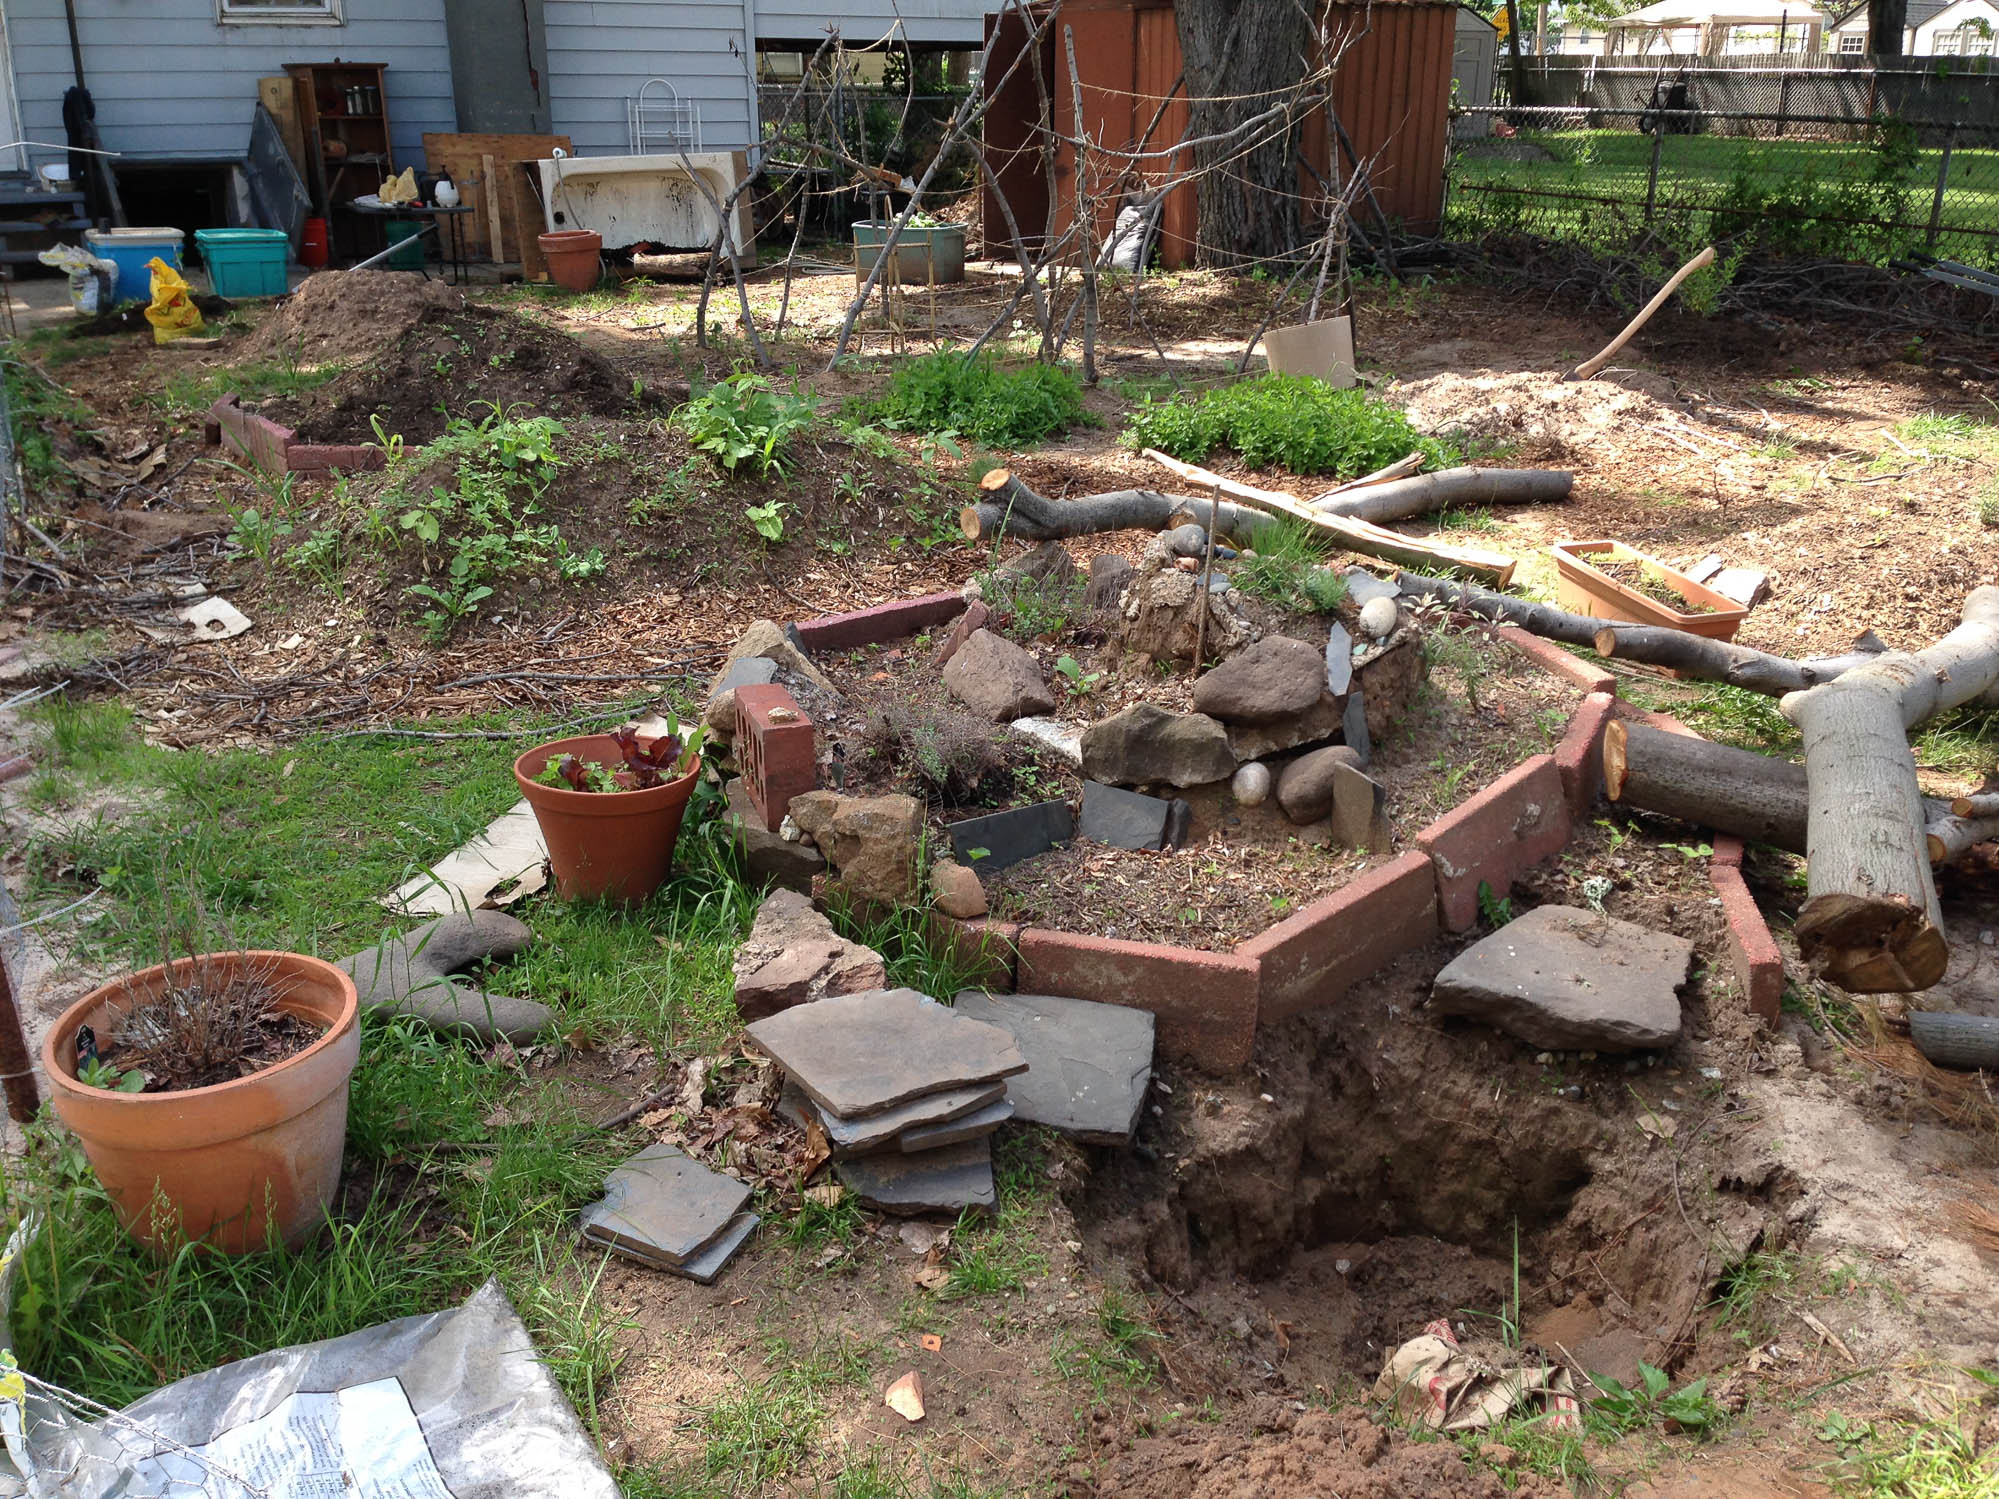 By the end of May there are sprouts in all the beds.  Jon begins his pond project.